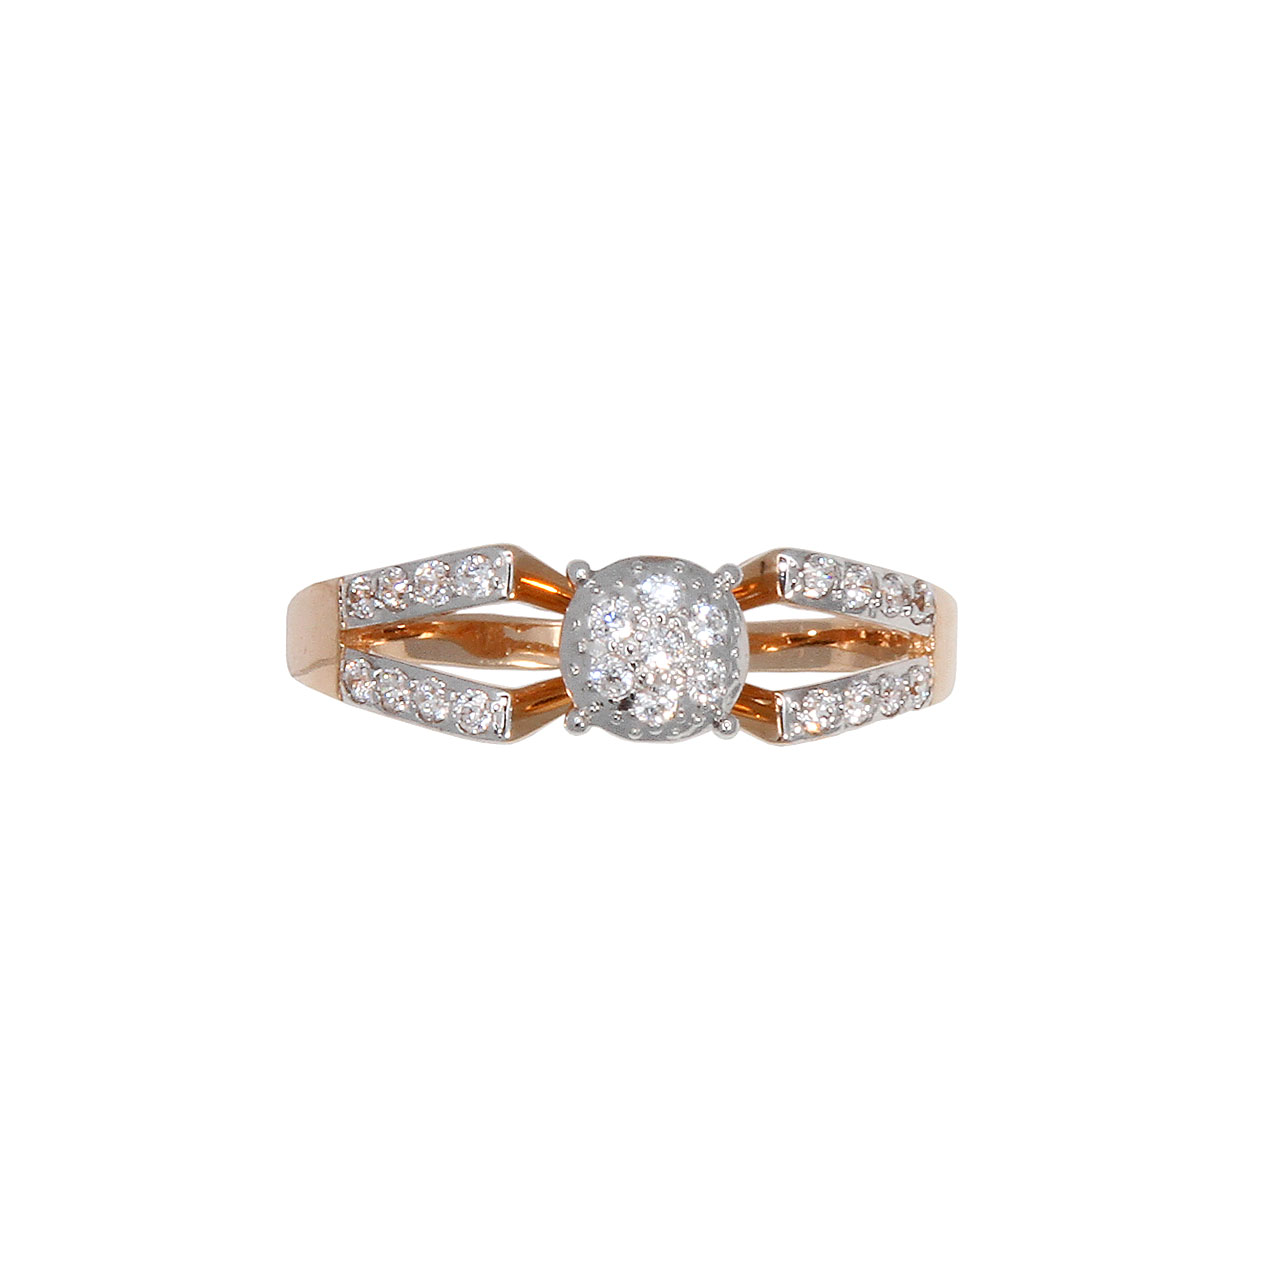 Double shank rose gold ring 4